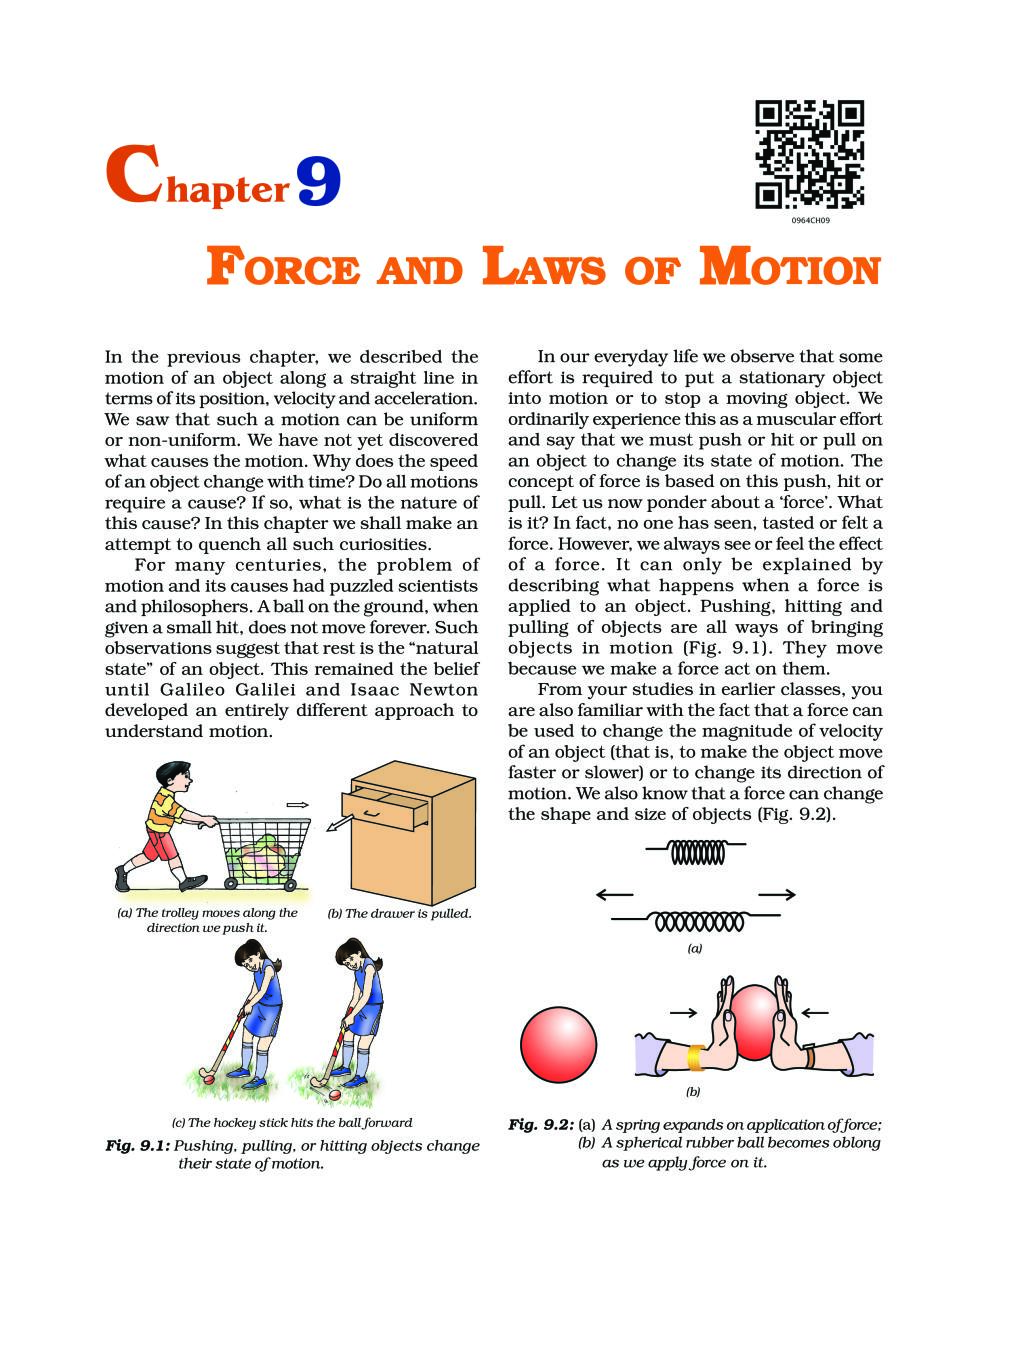 NCERT Book Class 9 Science Chapter 9 Force And Laws Of Motion